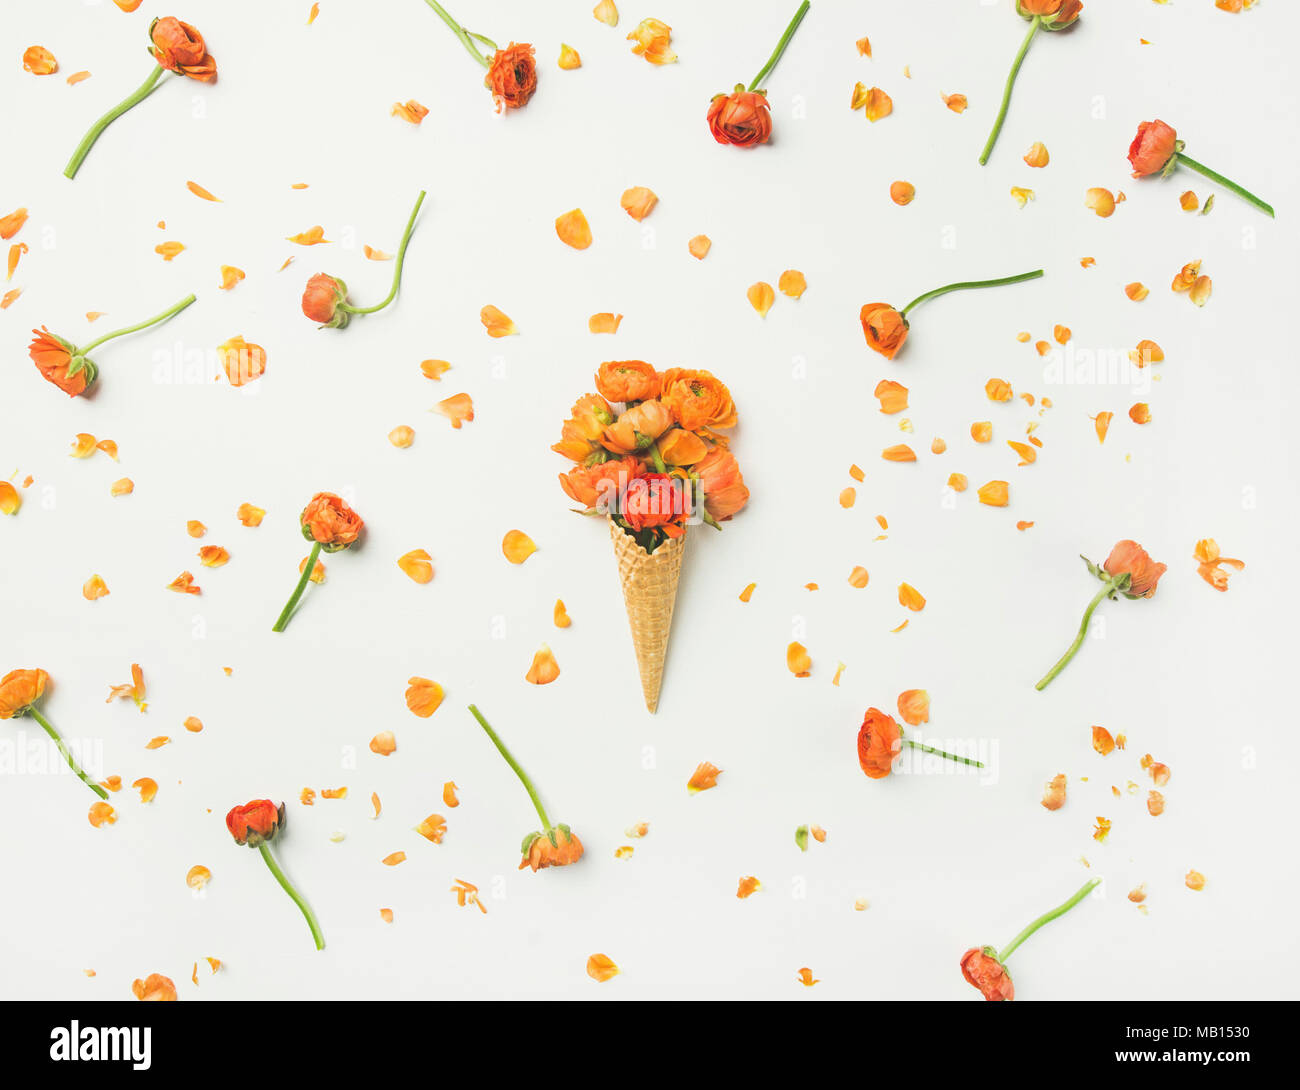 Flat-lay of waffle sweet cone with orange buttercup flowers over white background, top view. Spring or summer mood concept Stock Photo